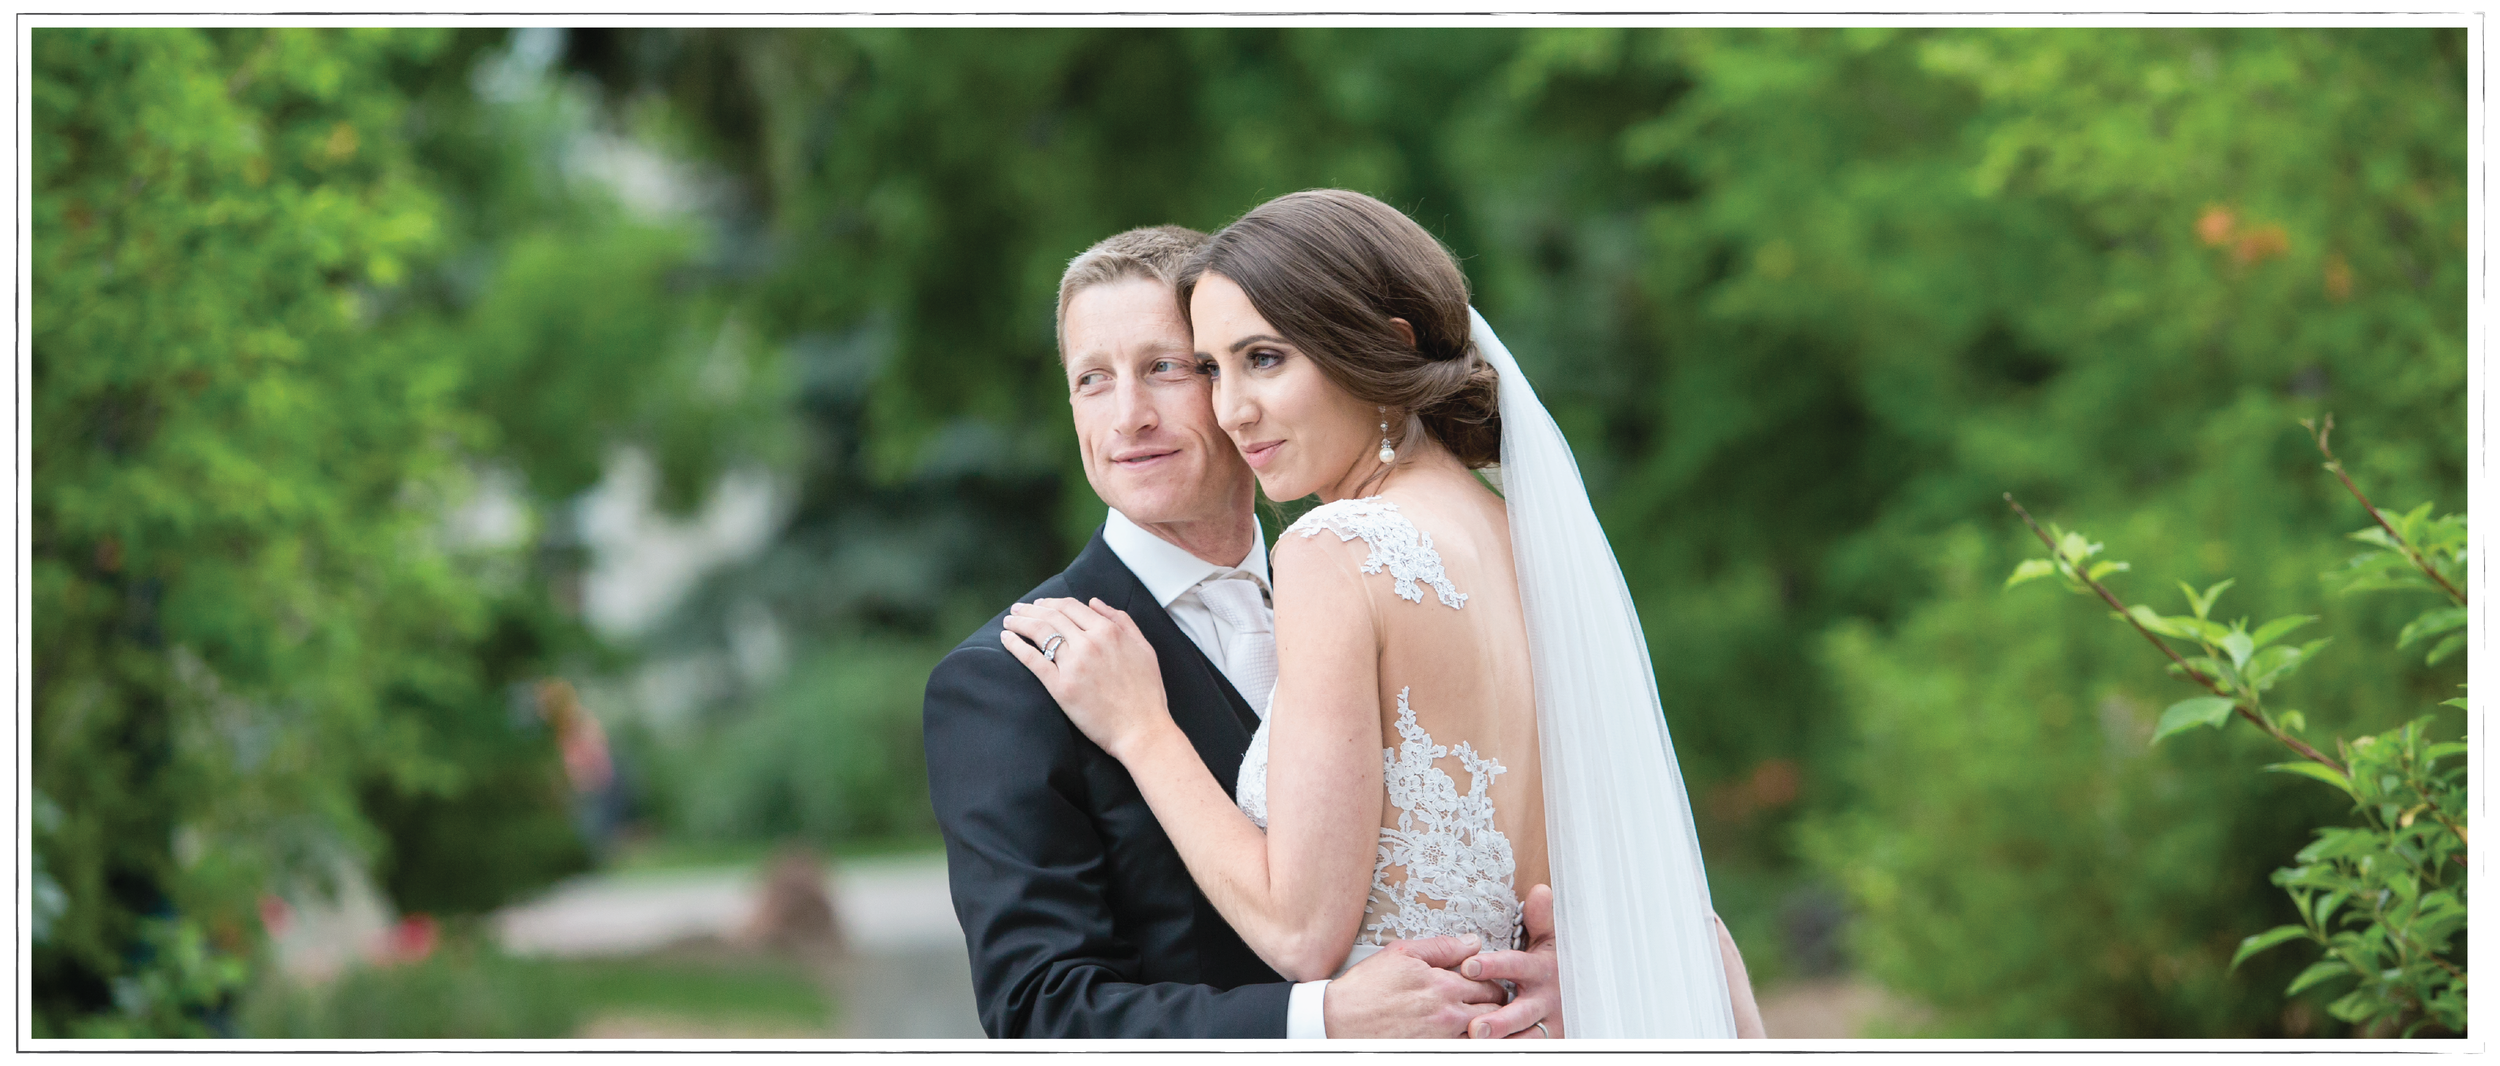 Linen Rentals | Soiree Linen | Boulder Colorado Wedding